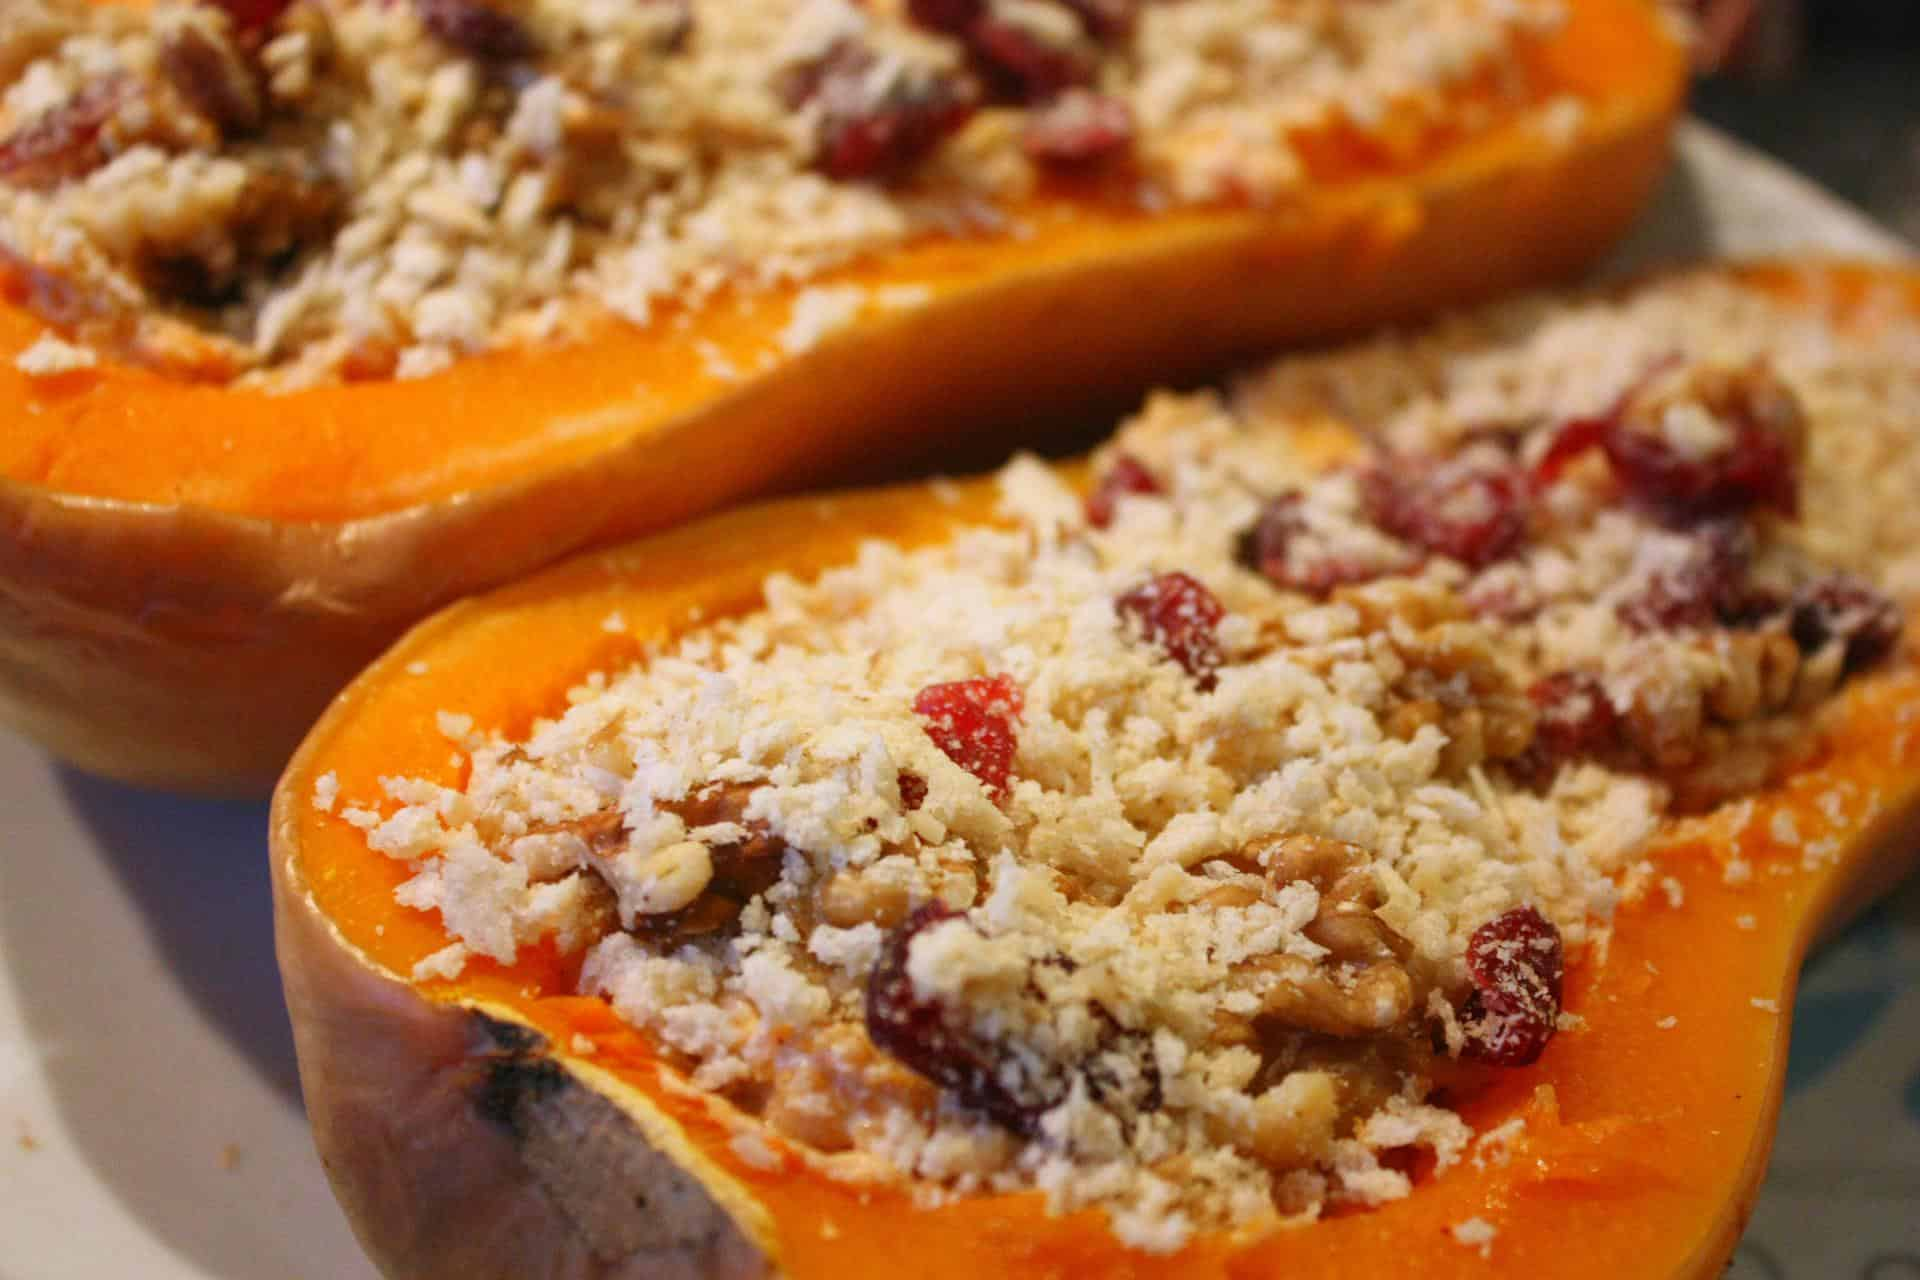 twice baked butternut squash twice baked butternut squash twice baked ...